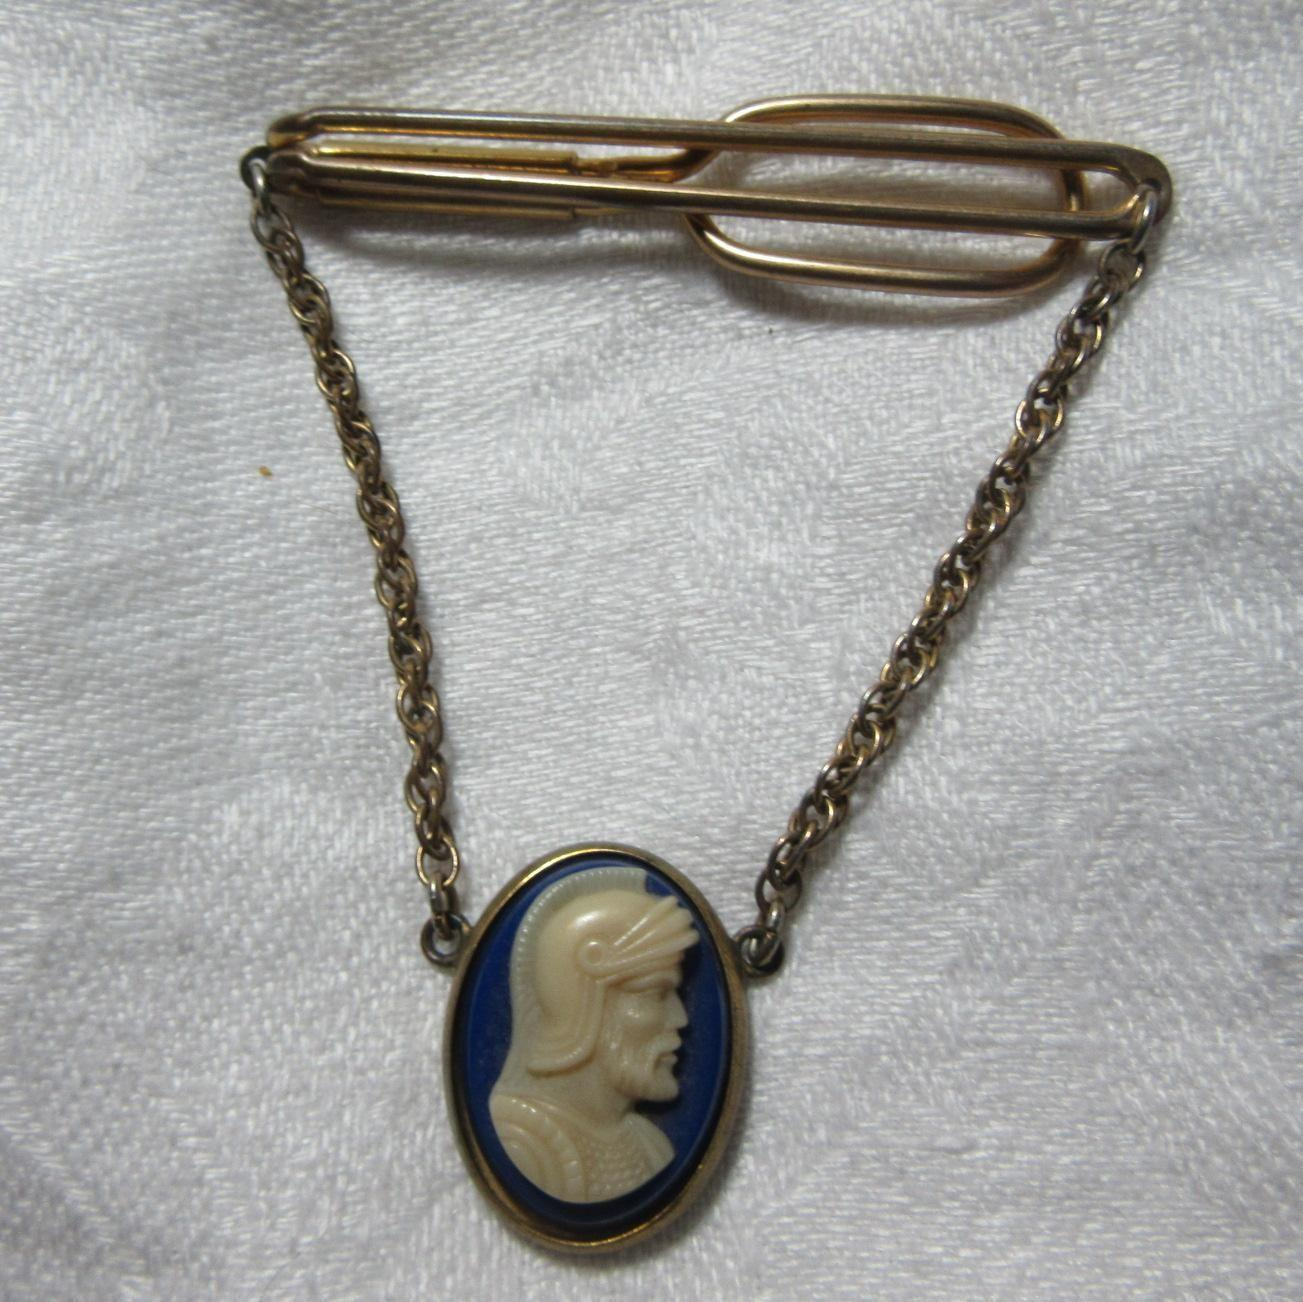 Old Tie Bar With Cameo Pendant